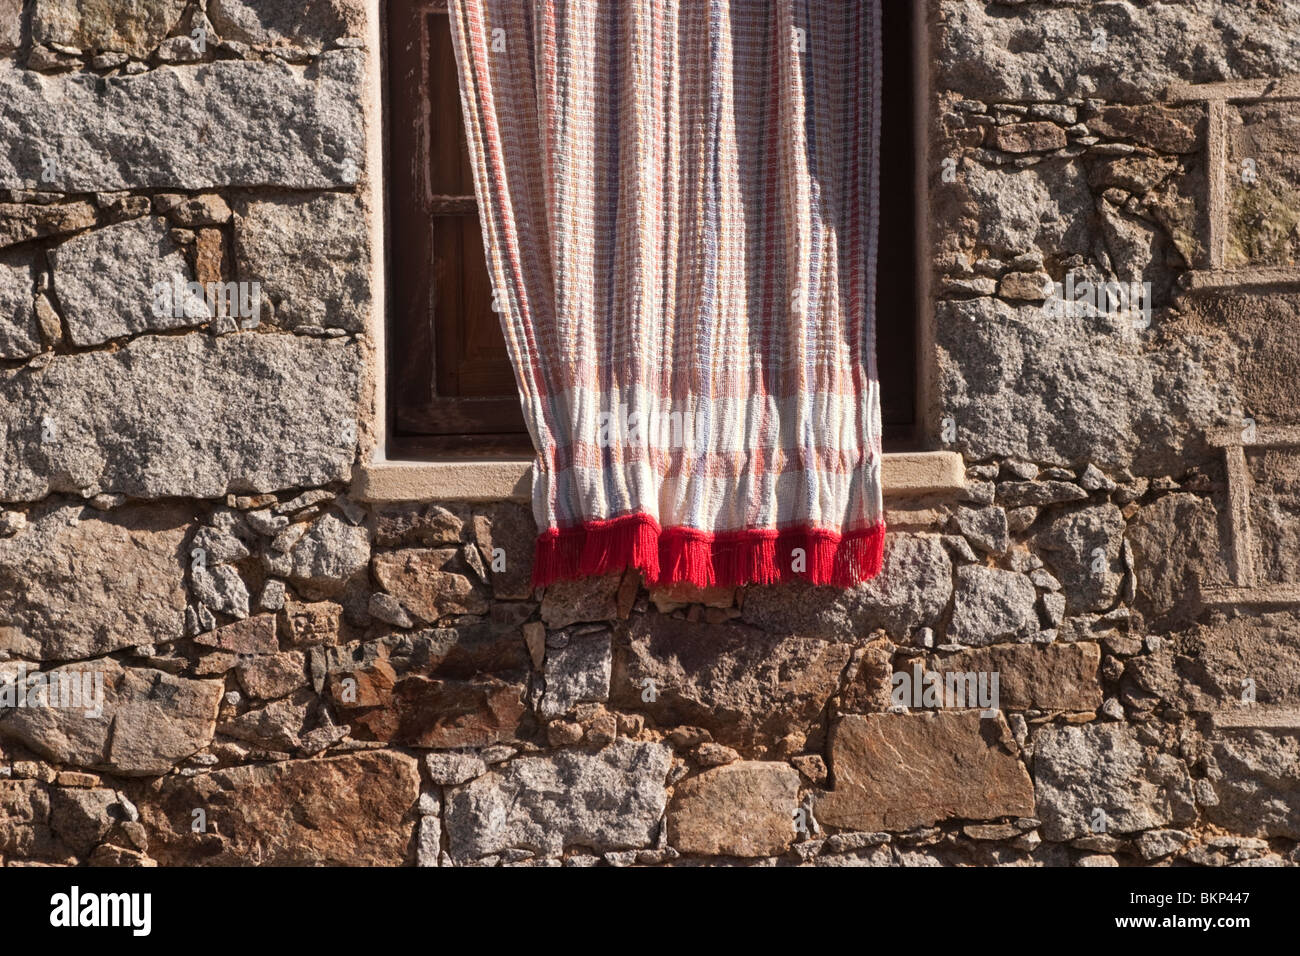 Curtain over window in stone built house Corsica - Stock Image